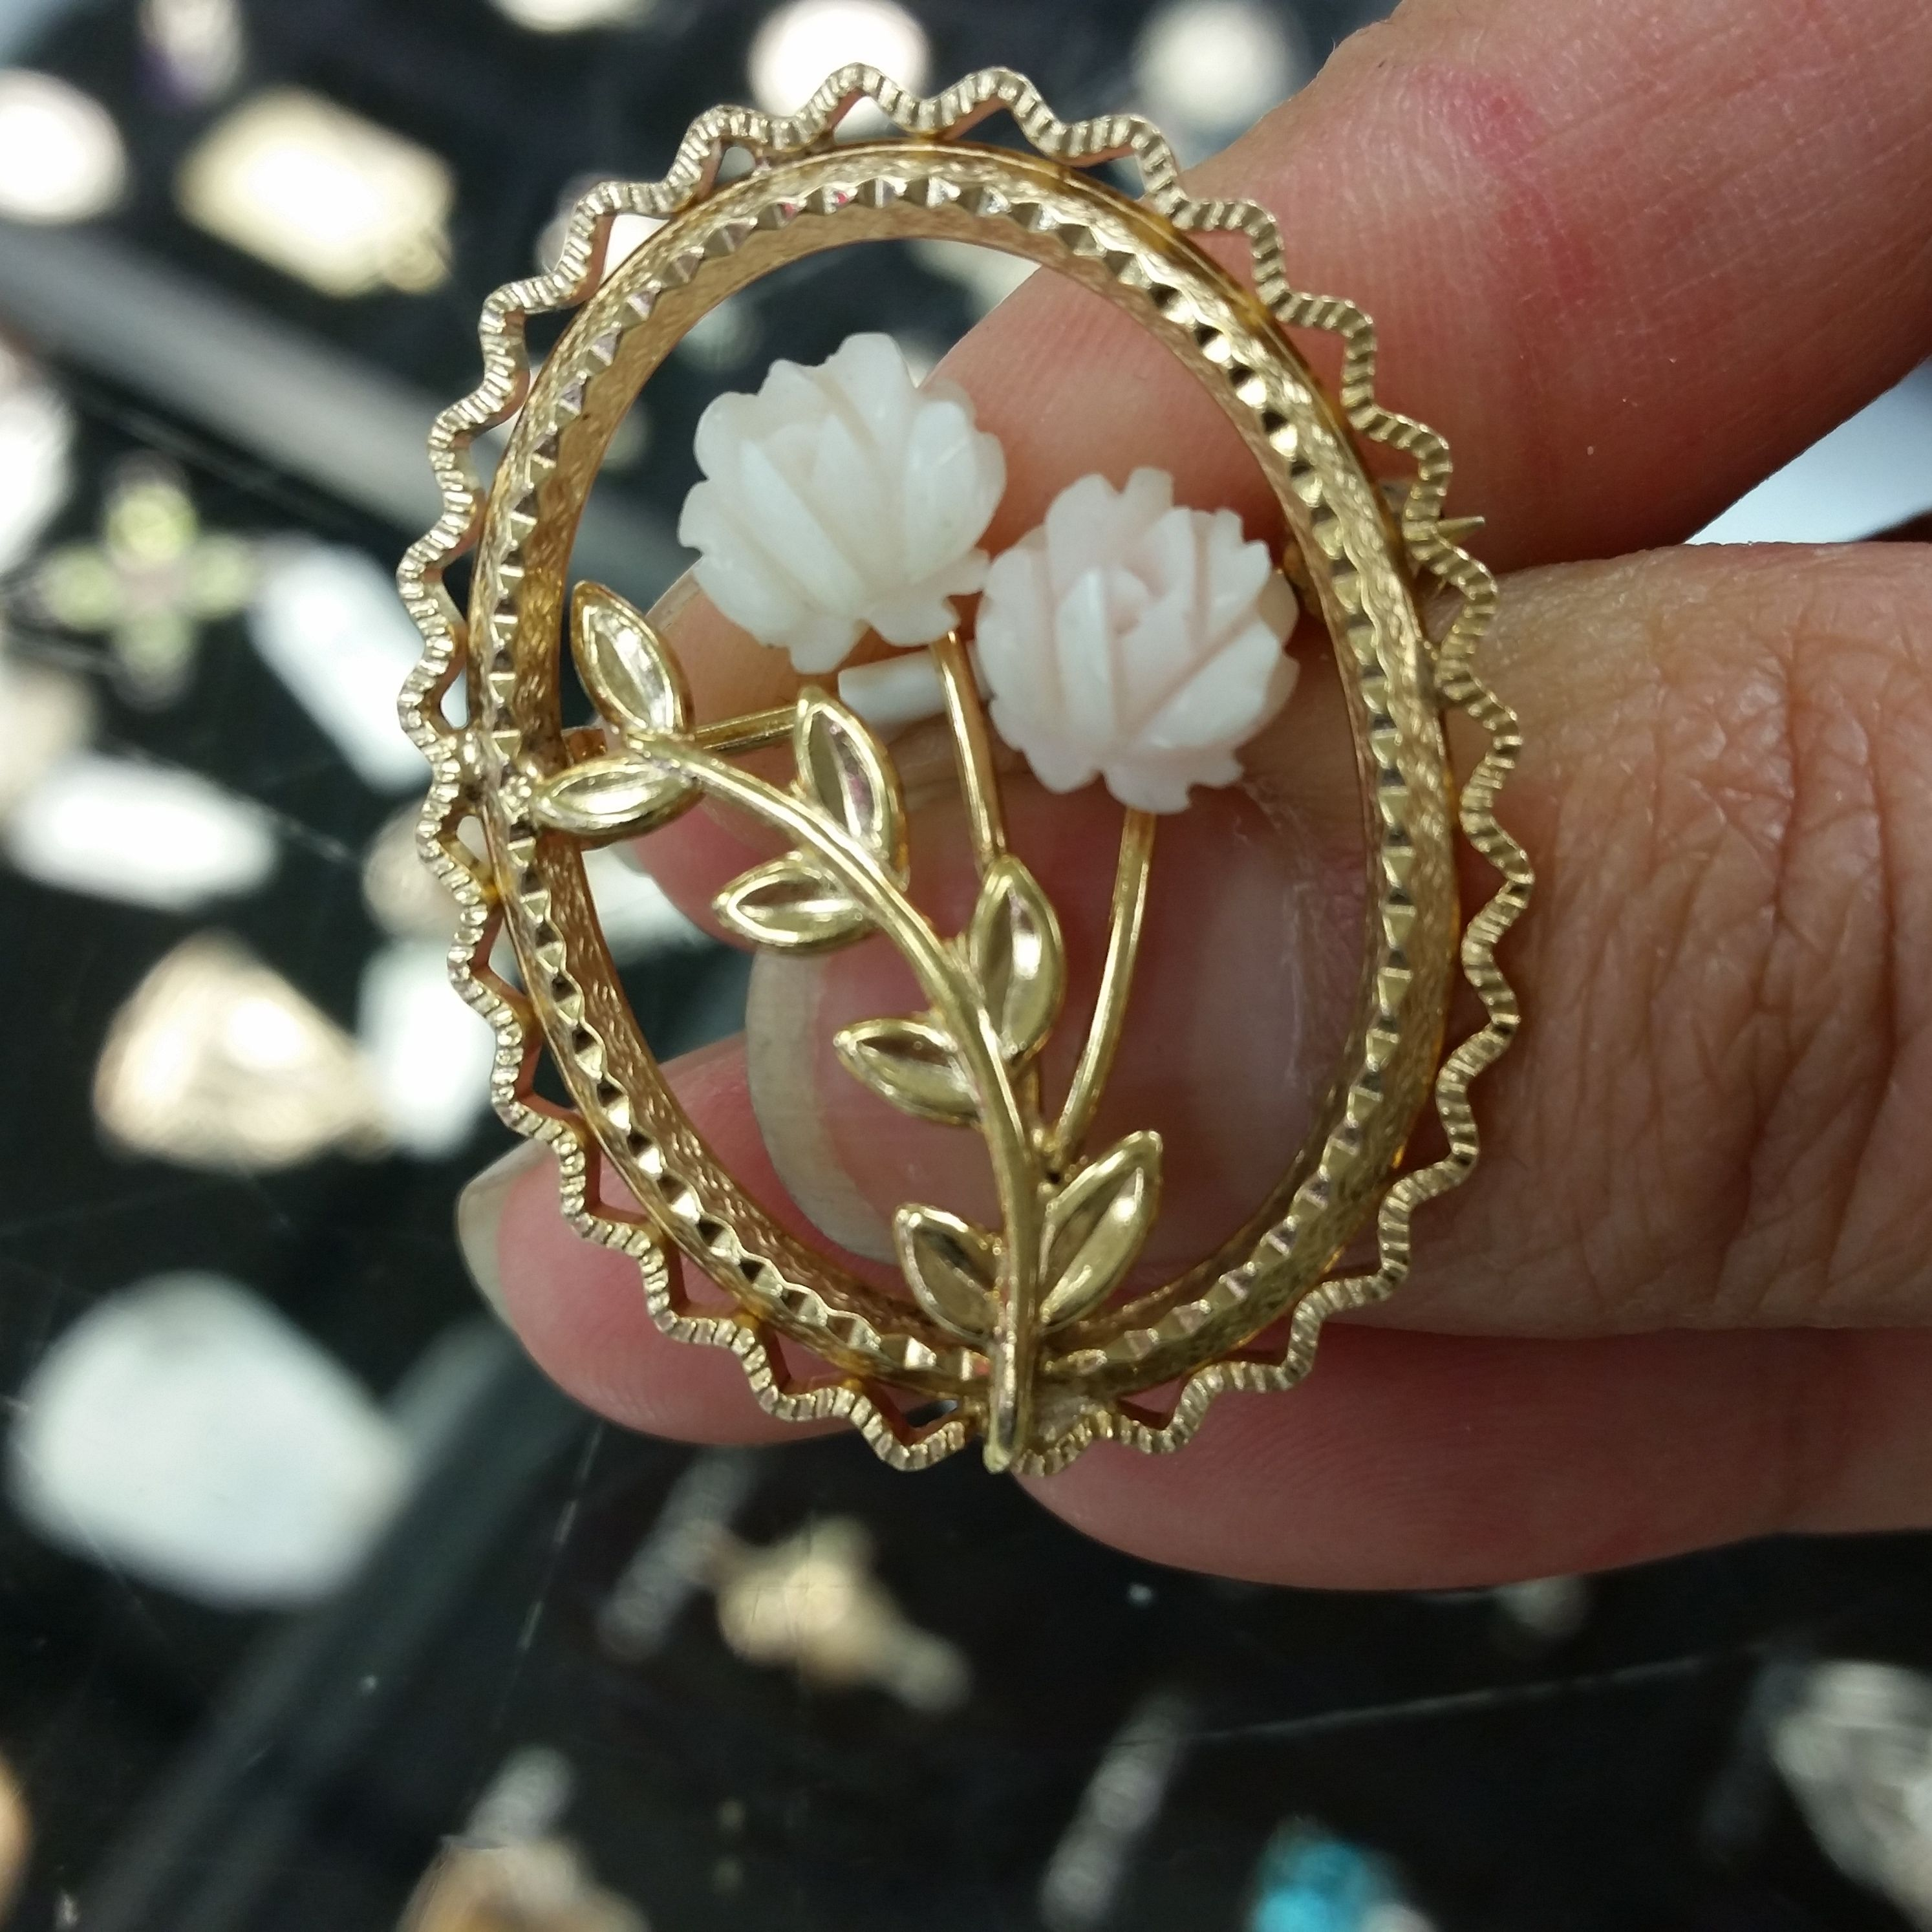 Here is a cute flower brooch that can be worn to any